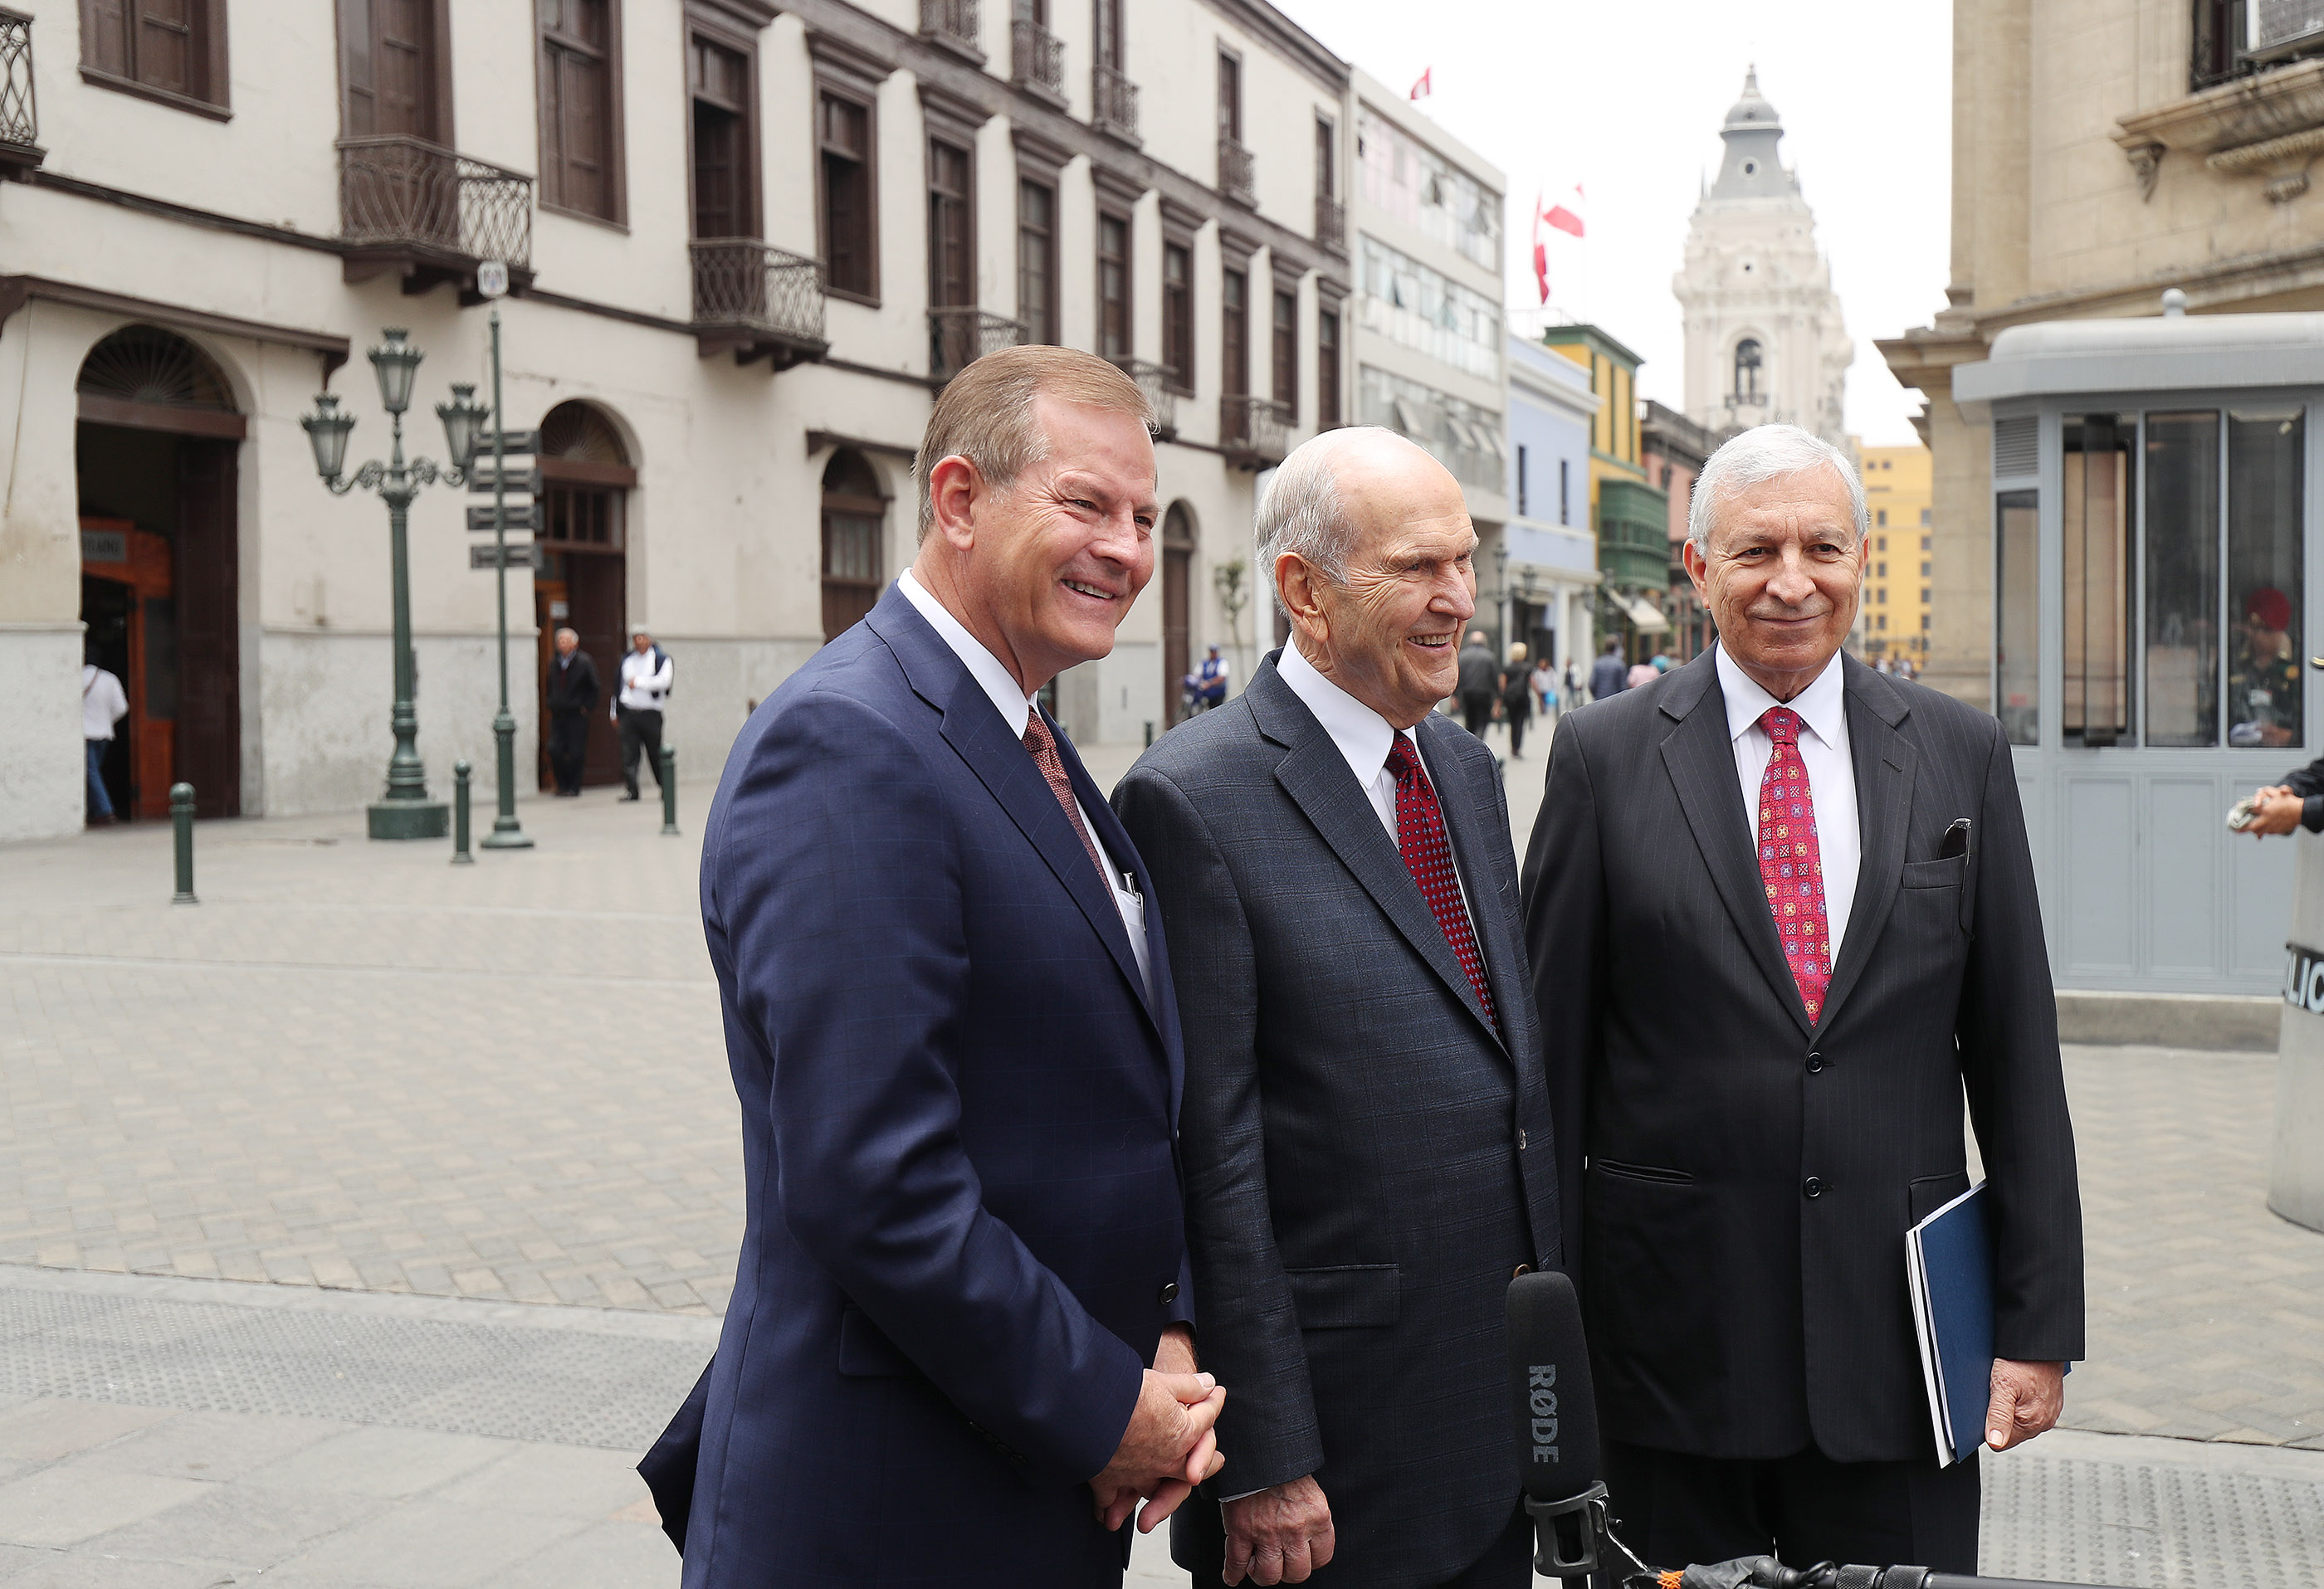 President Russell M. Nelson, center, Elder Gary E. Stevenson of the Quorum of the Twelve Apostles, left, and Elder Enrique Falabella, General Authority Seventy, right, speak with media after leaving the Government Palace after meeting with the president of Peru in Lima, Peru, on Oct. 20, 2018.